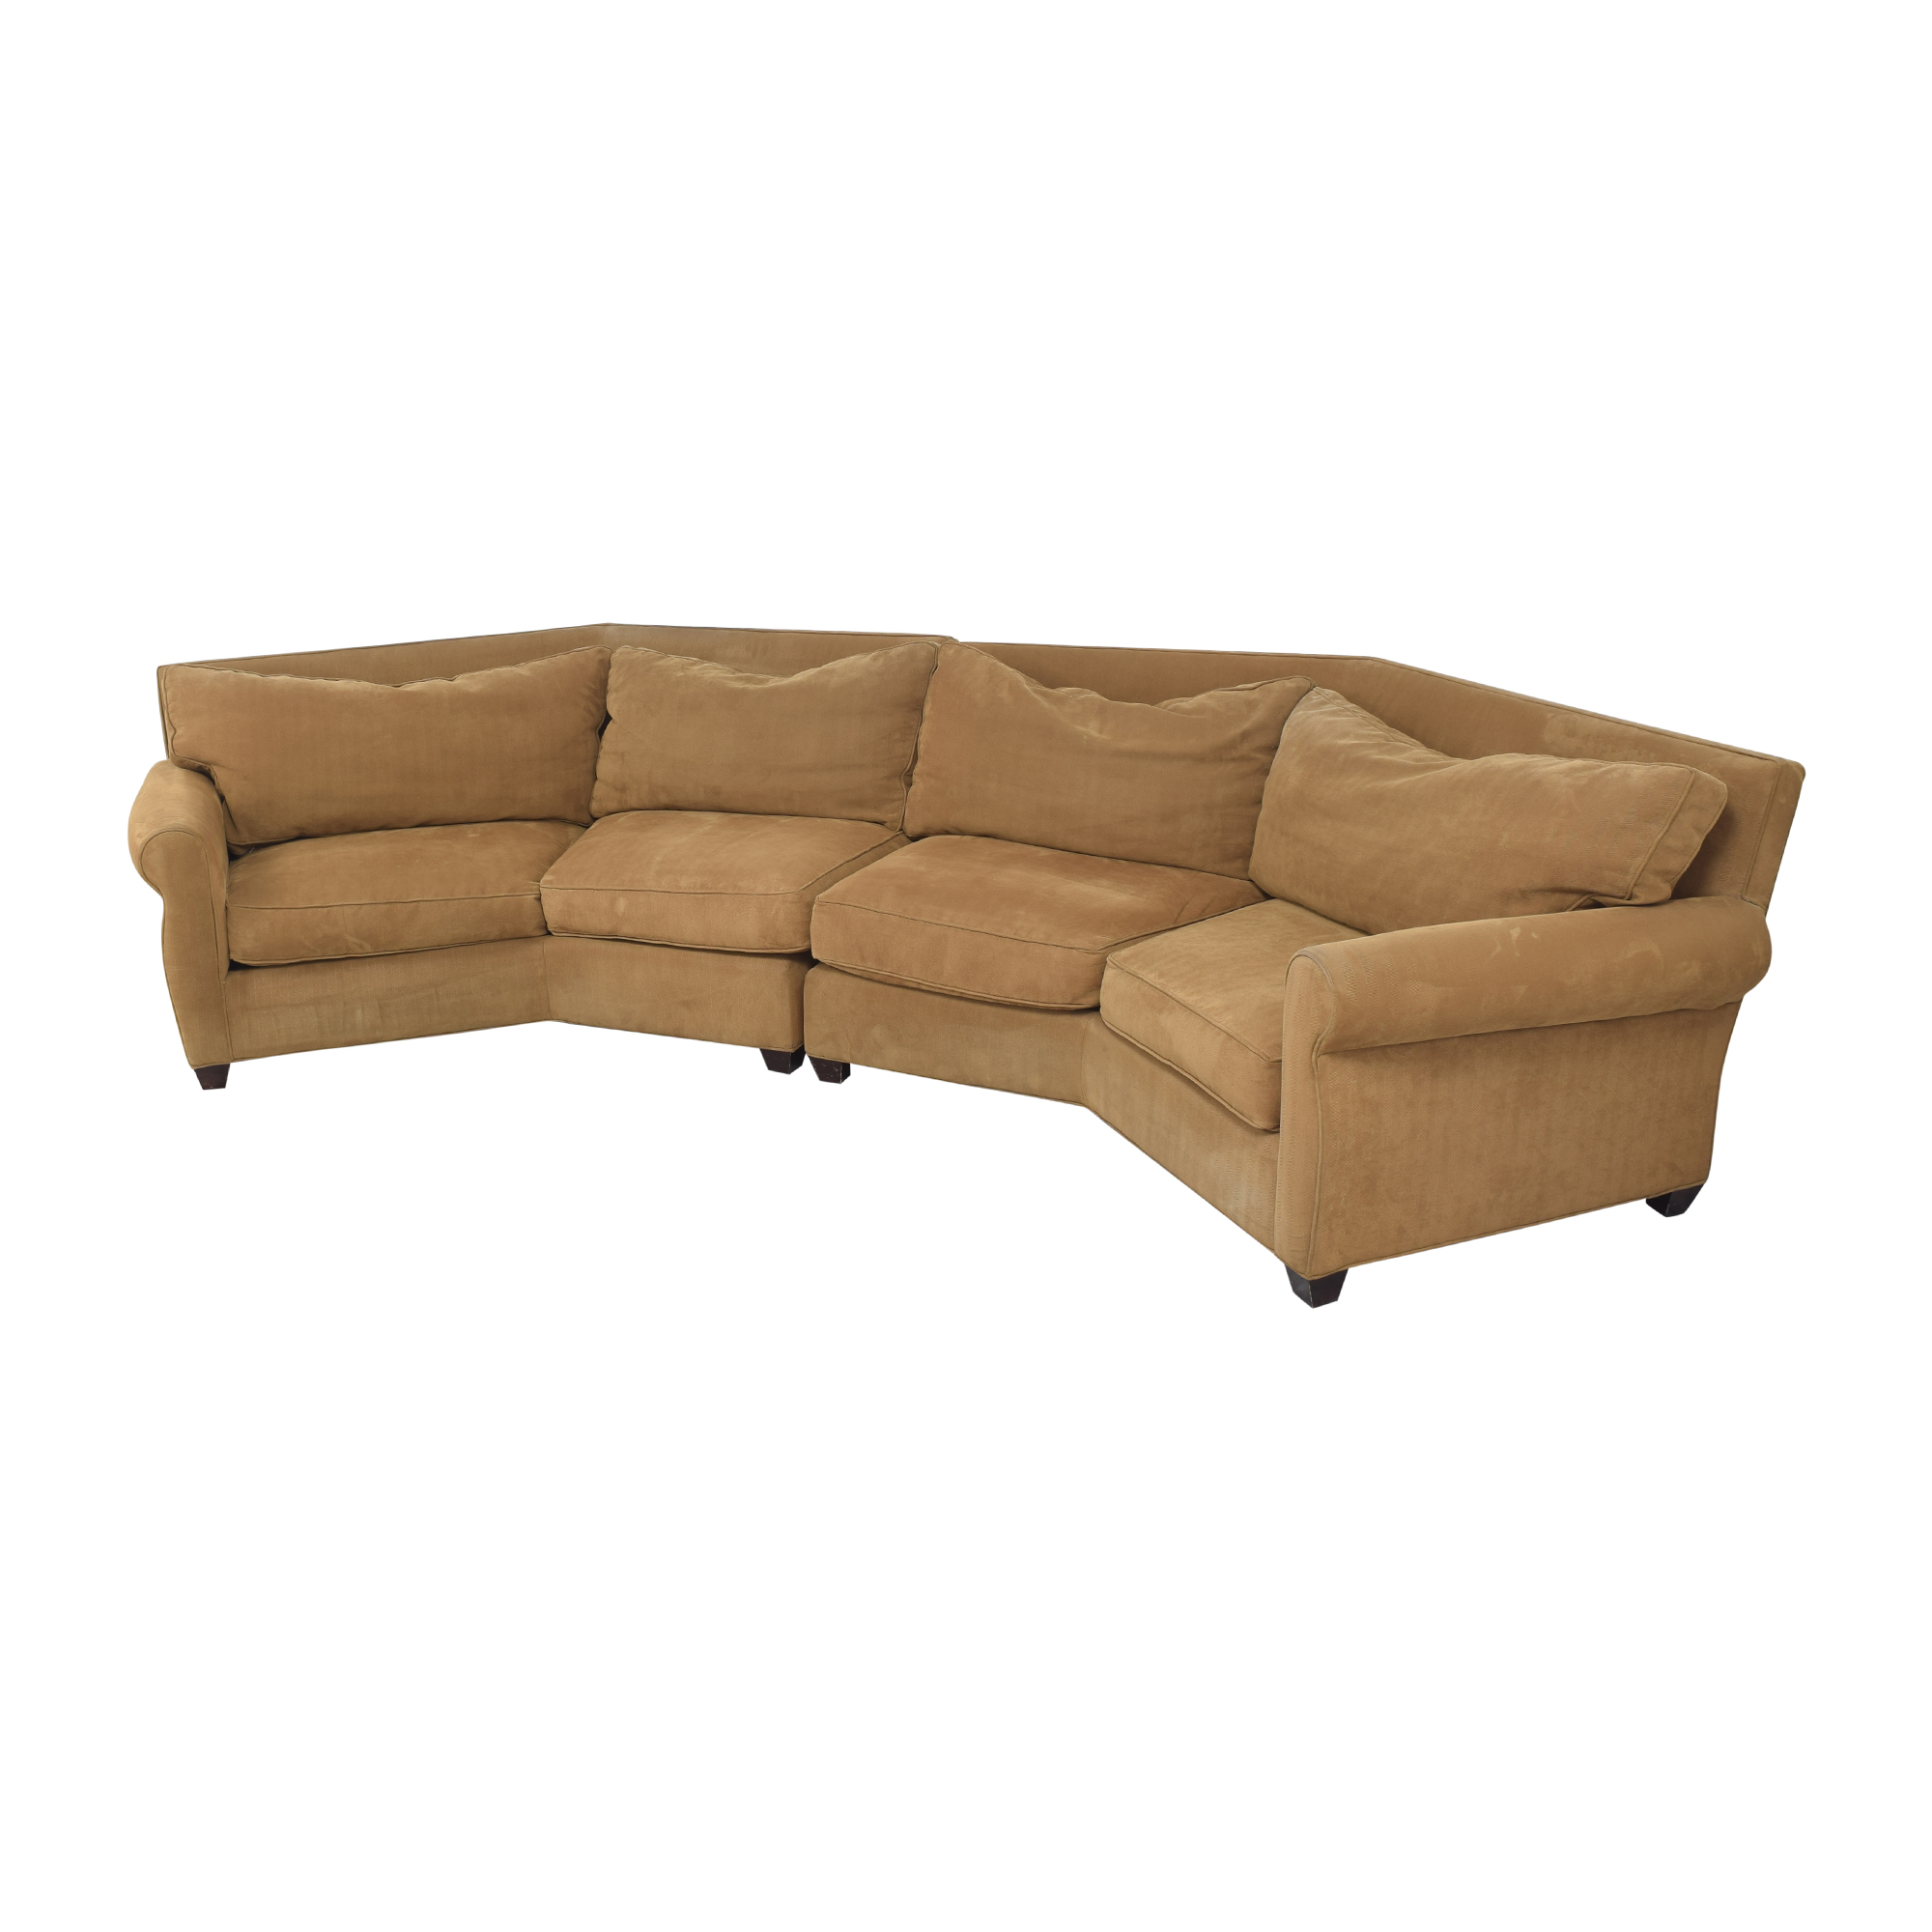 McCreary Modern McCreary Modern Sectional Sofa by